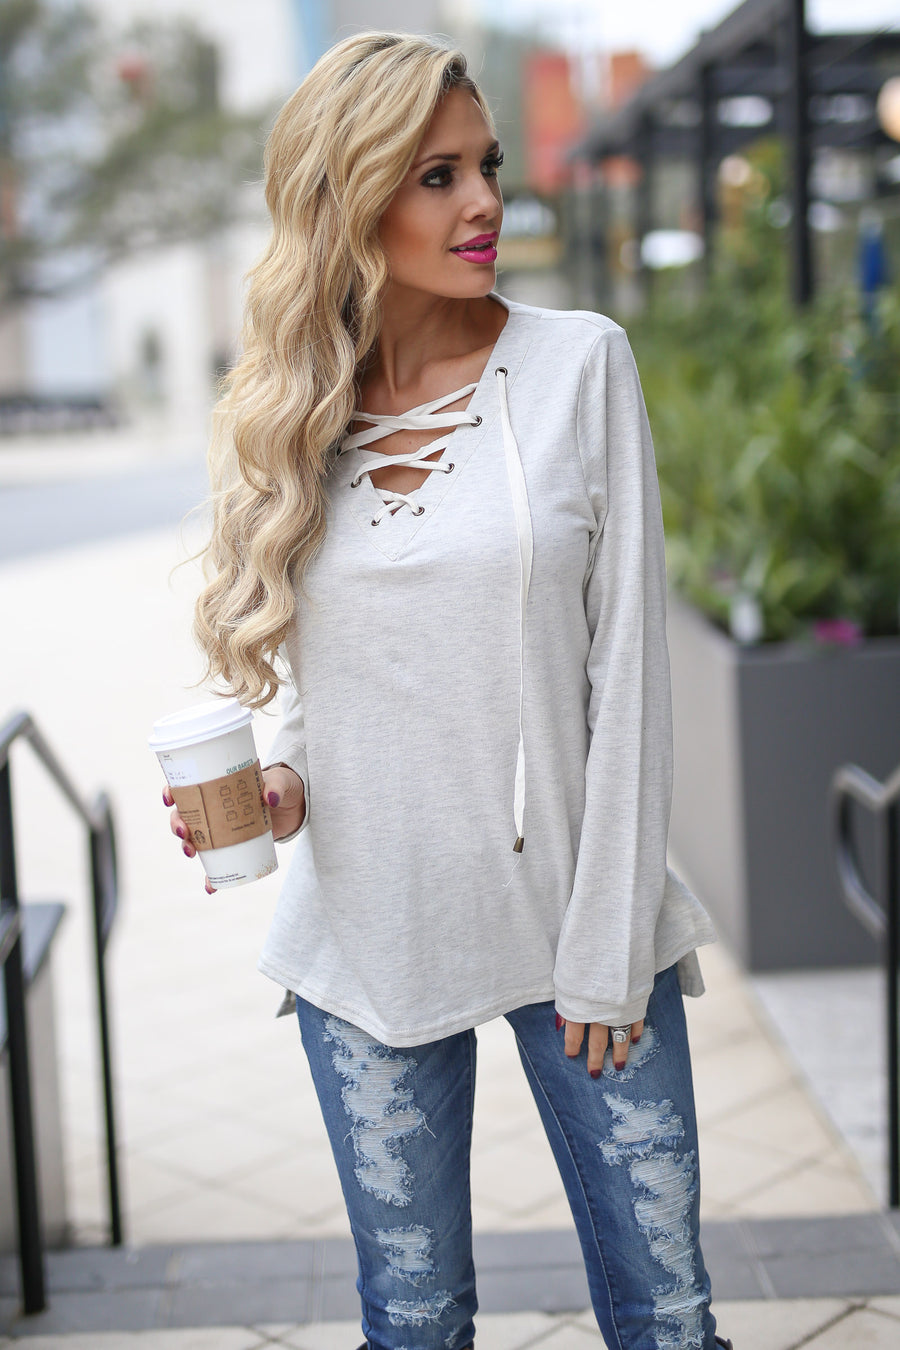 Look At Me Now Top - cute oatmeal long sleeve lace up top, front, Closet Candy Boutique